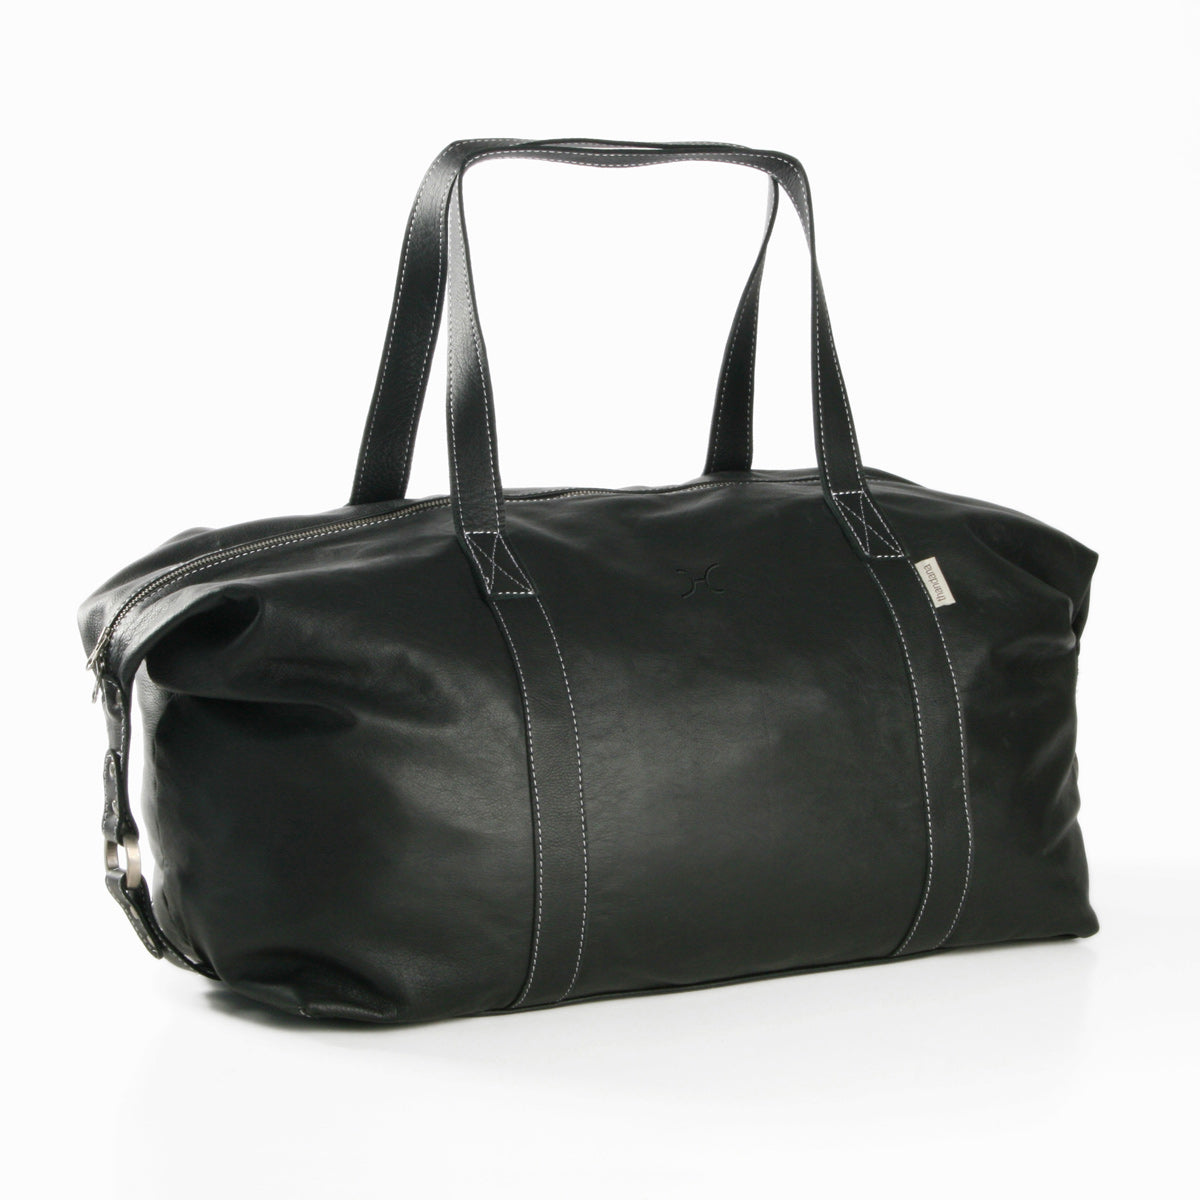 Thandana Duffel Bag - Black - Zufrique Boutique